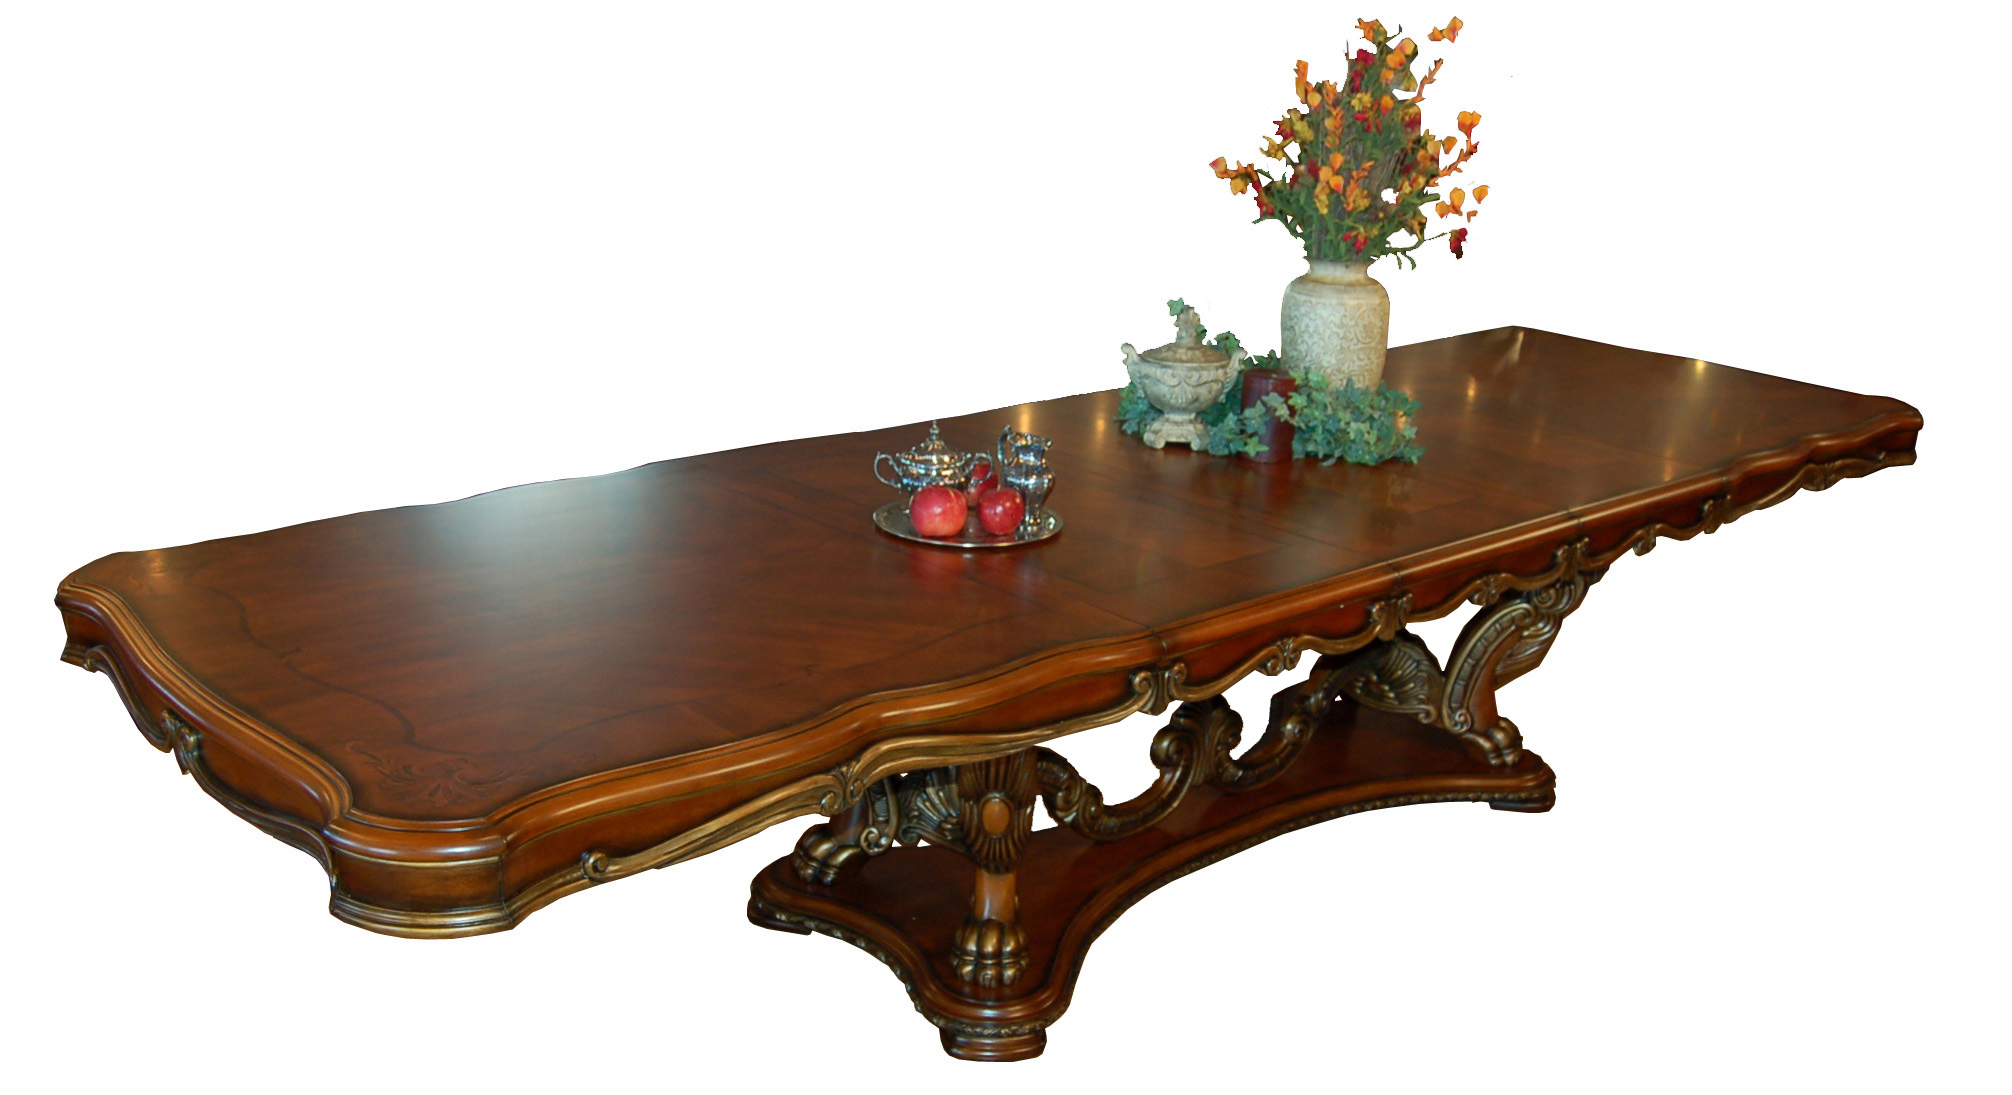 product detail large kitchen tables Ornate French Rococo Large Dining Room Table Full View 1